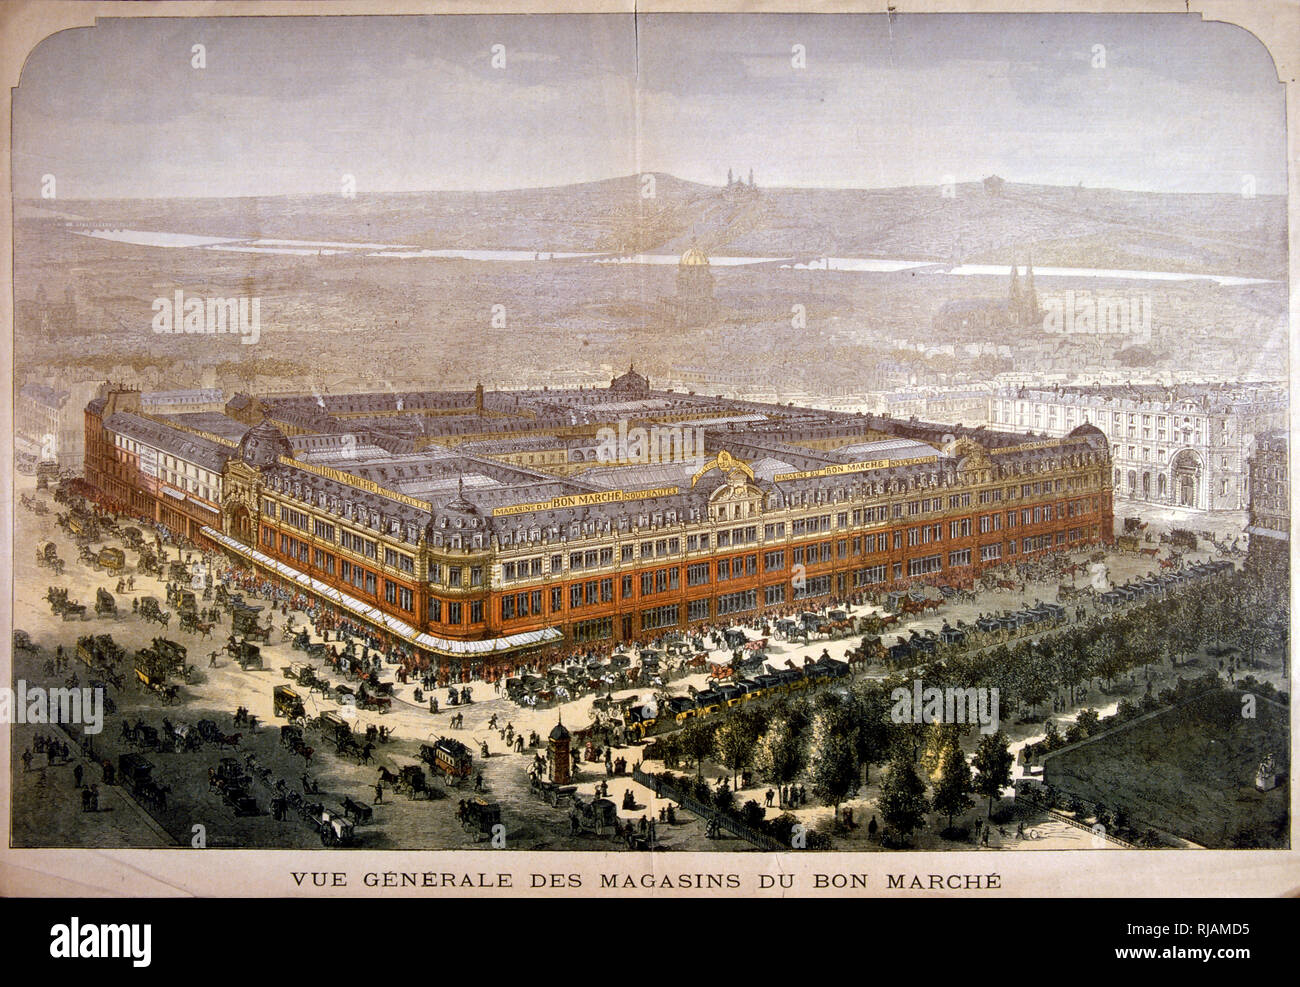 19th century illustration showing, Le Bon Marche department store, in Paris. Founded in 1838 and revamped almost completely by Aristide Boucicaut in 1852, it was the first ever modern department store. Now the property of LVMH. - Stock Image